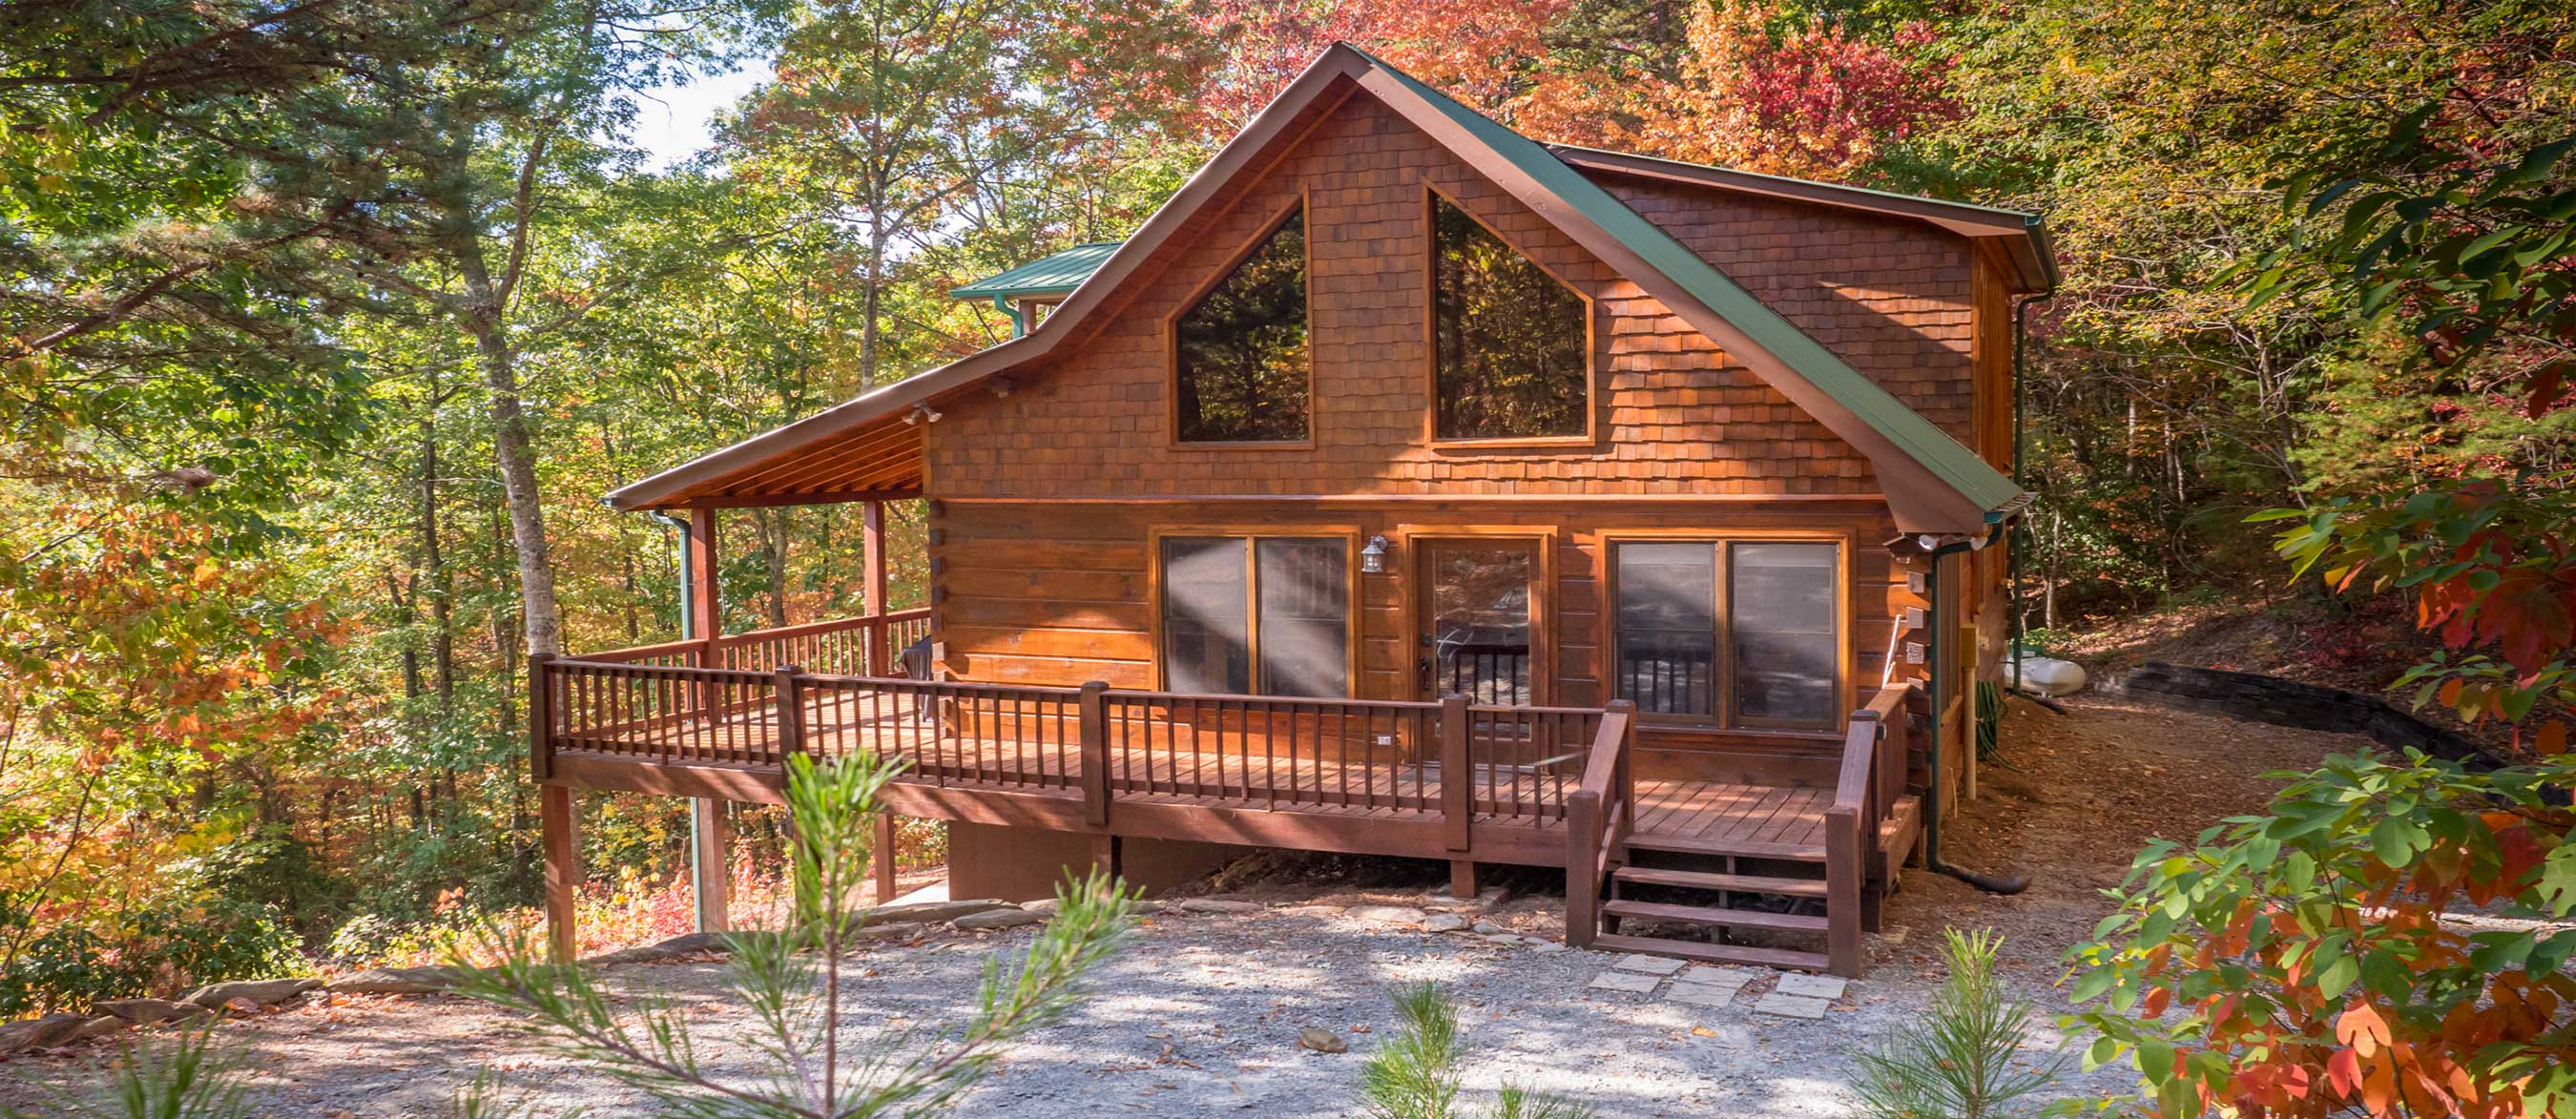 furnished enjoy carolina all in north mountain of ridge rentals the are best around centered nc views fully want asheville mountains these pin cabins cabin from blue check